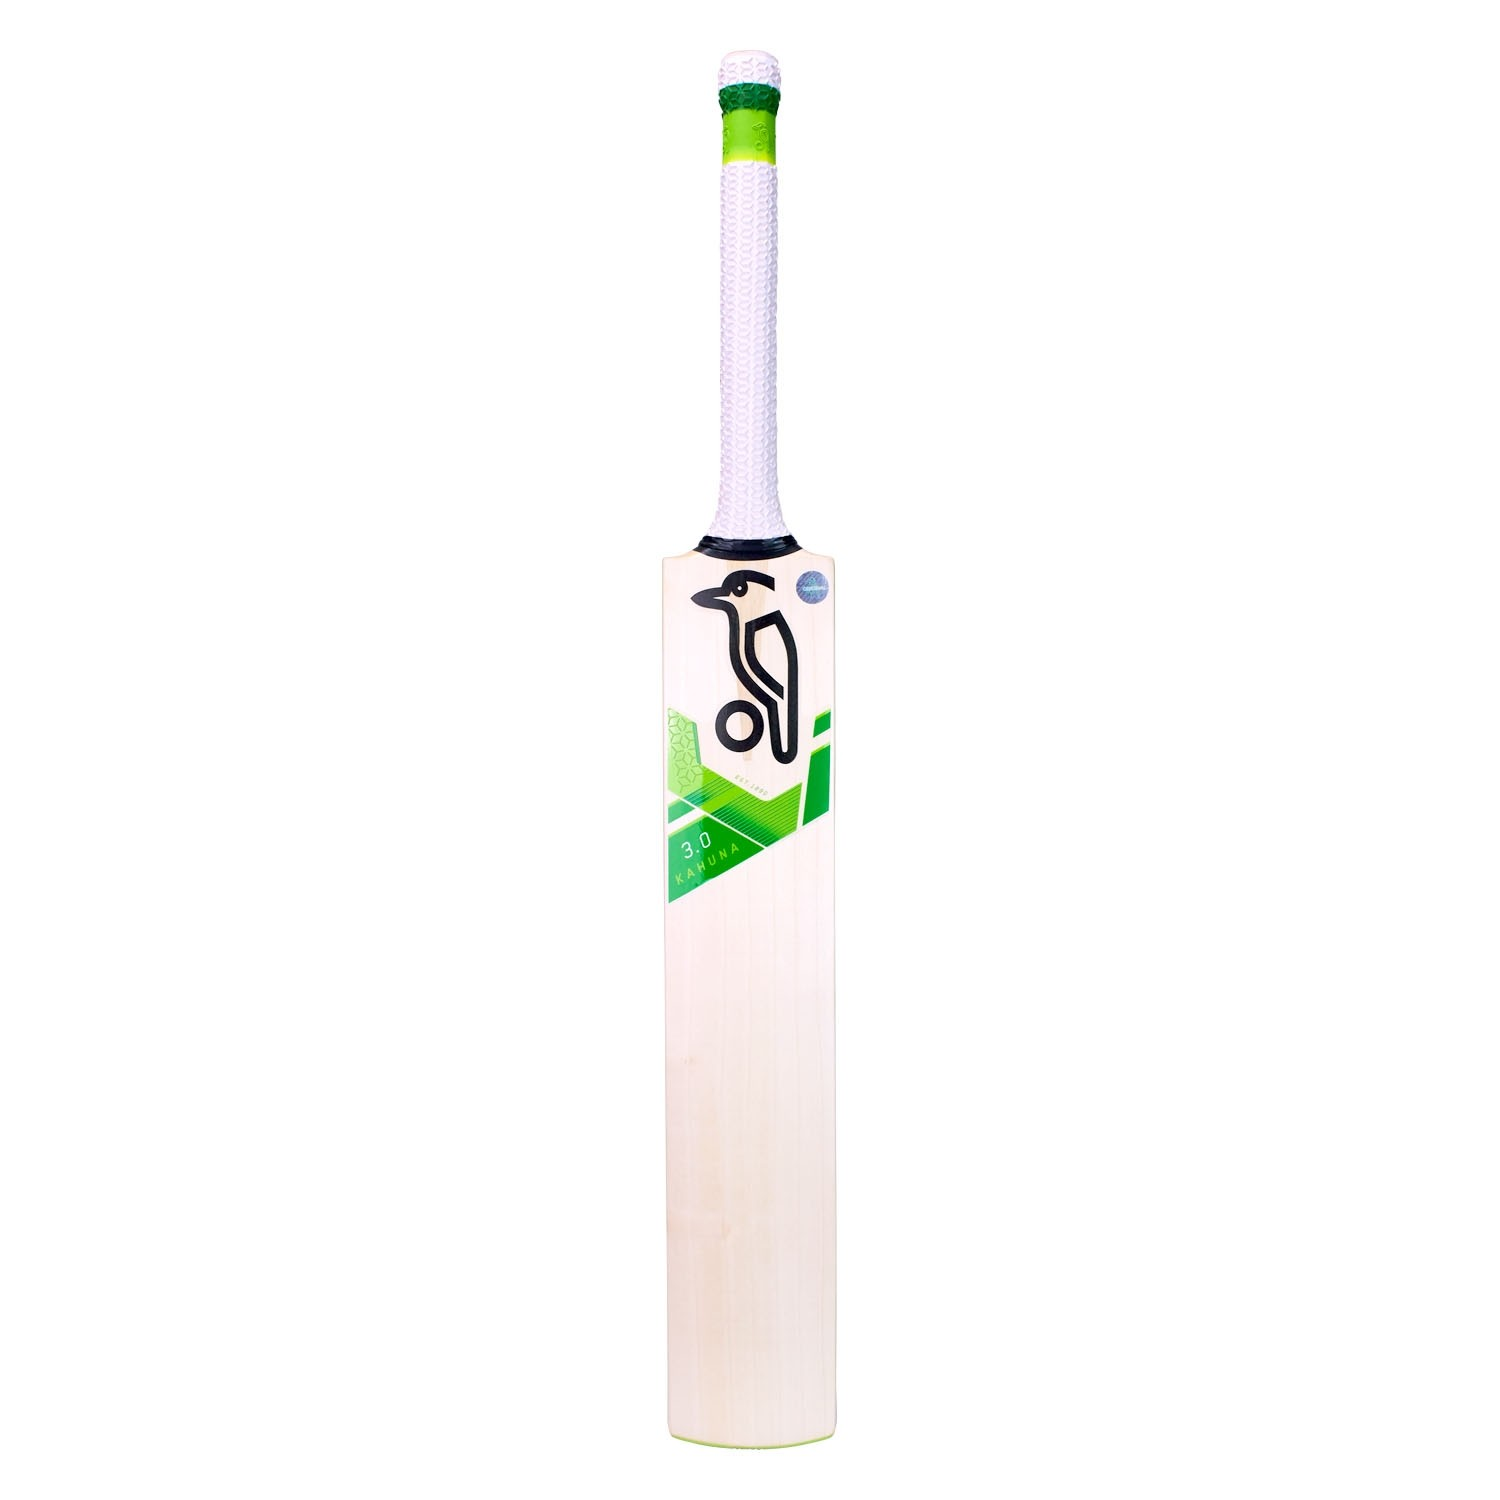 2021 Kookaburra Kahuna 3.0 Cricket Bat